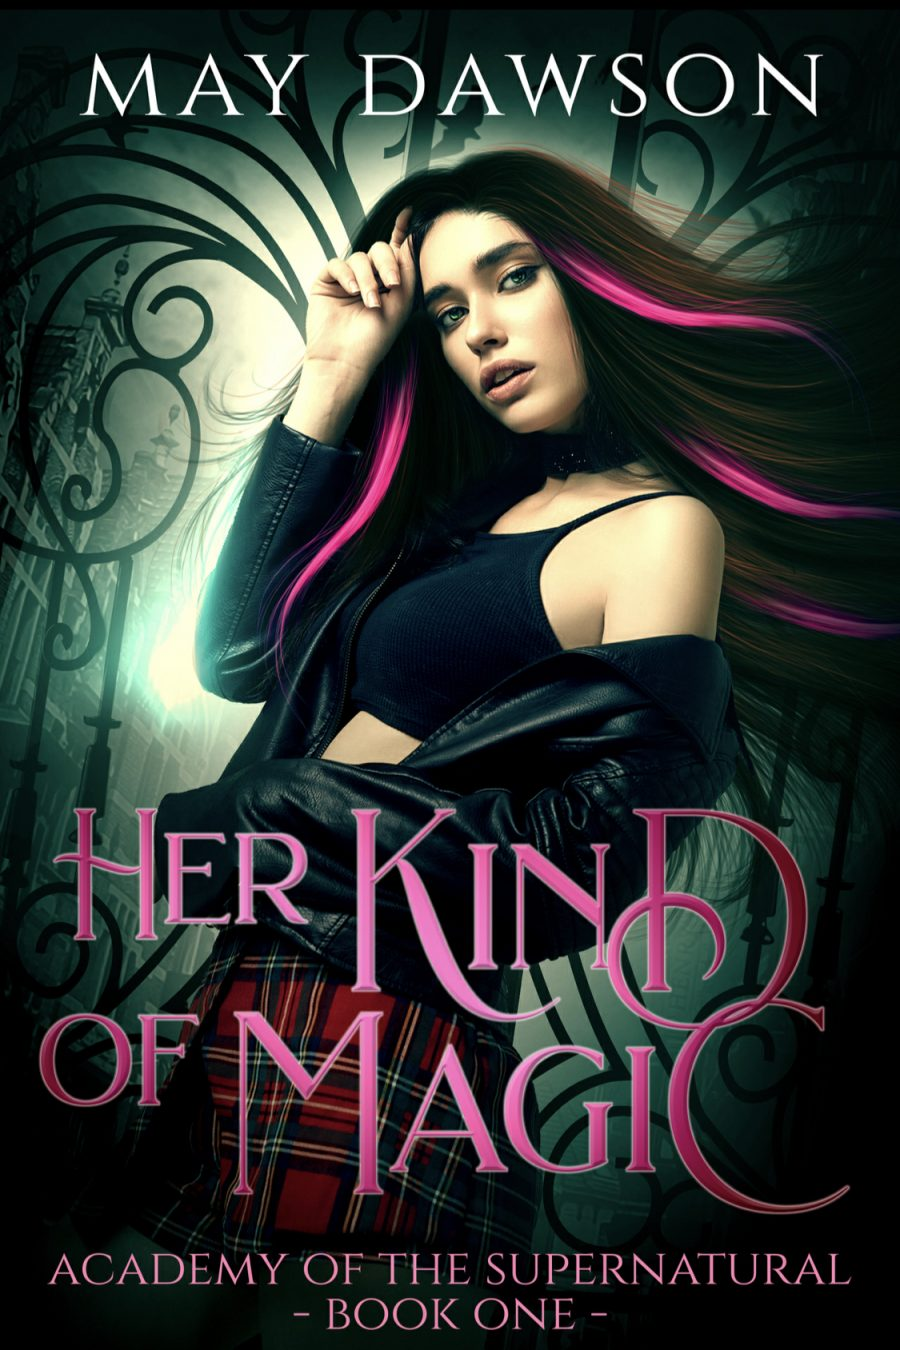 Her Kind of Magic by May Dawson - A Book Review #BookReview #PNR #Paranormal #RH #ReverseHarem #WhyChoose #SlowBurn #4Stars #KindleUnlimited #KU